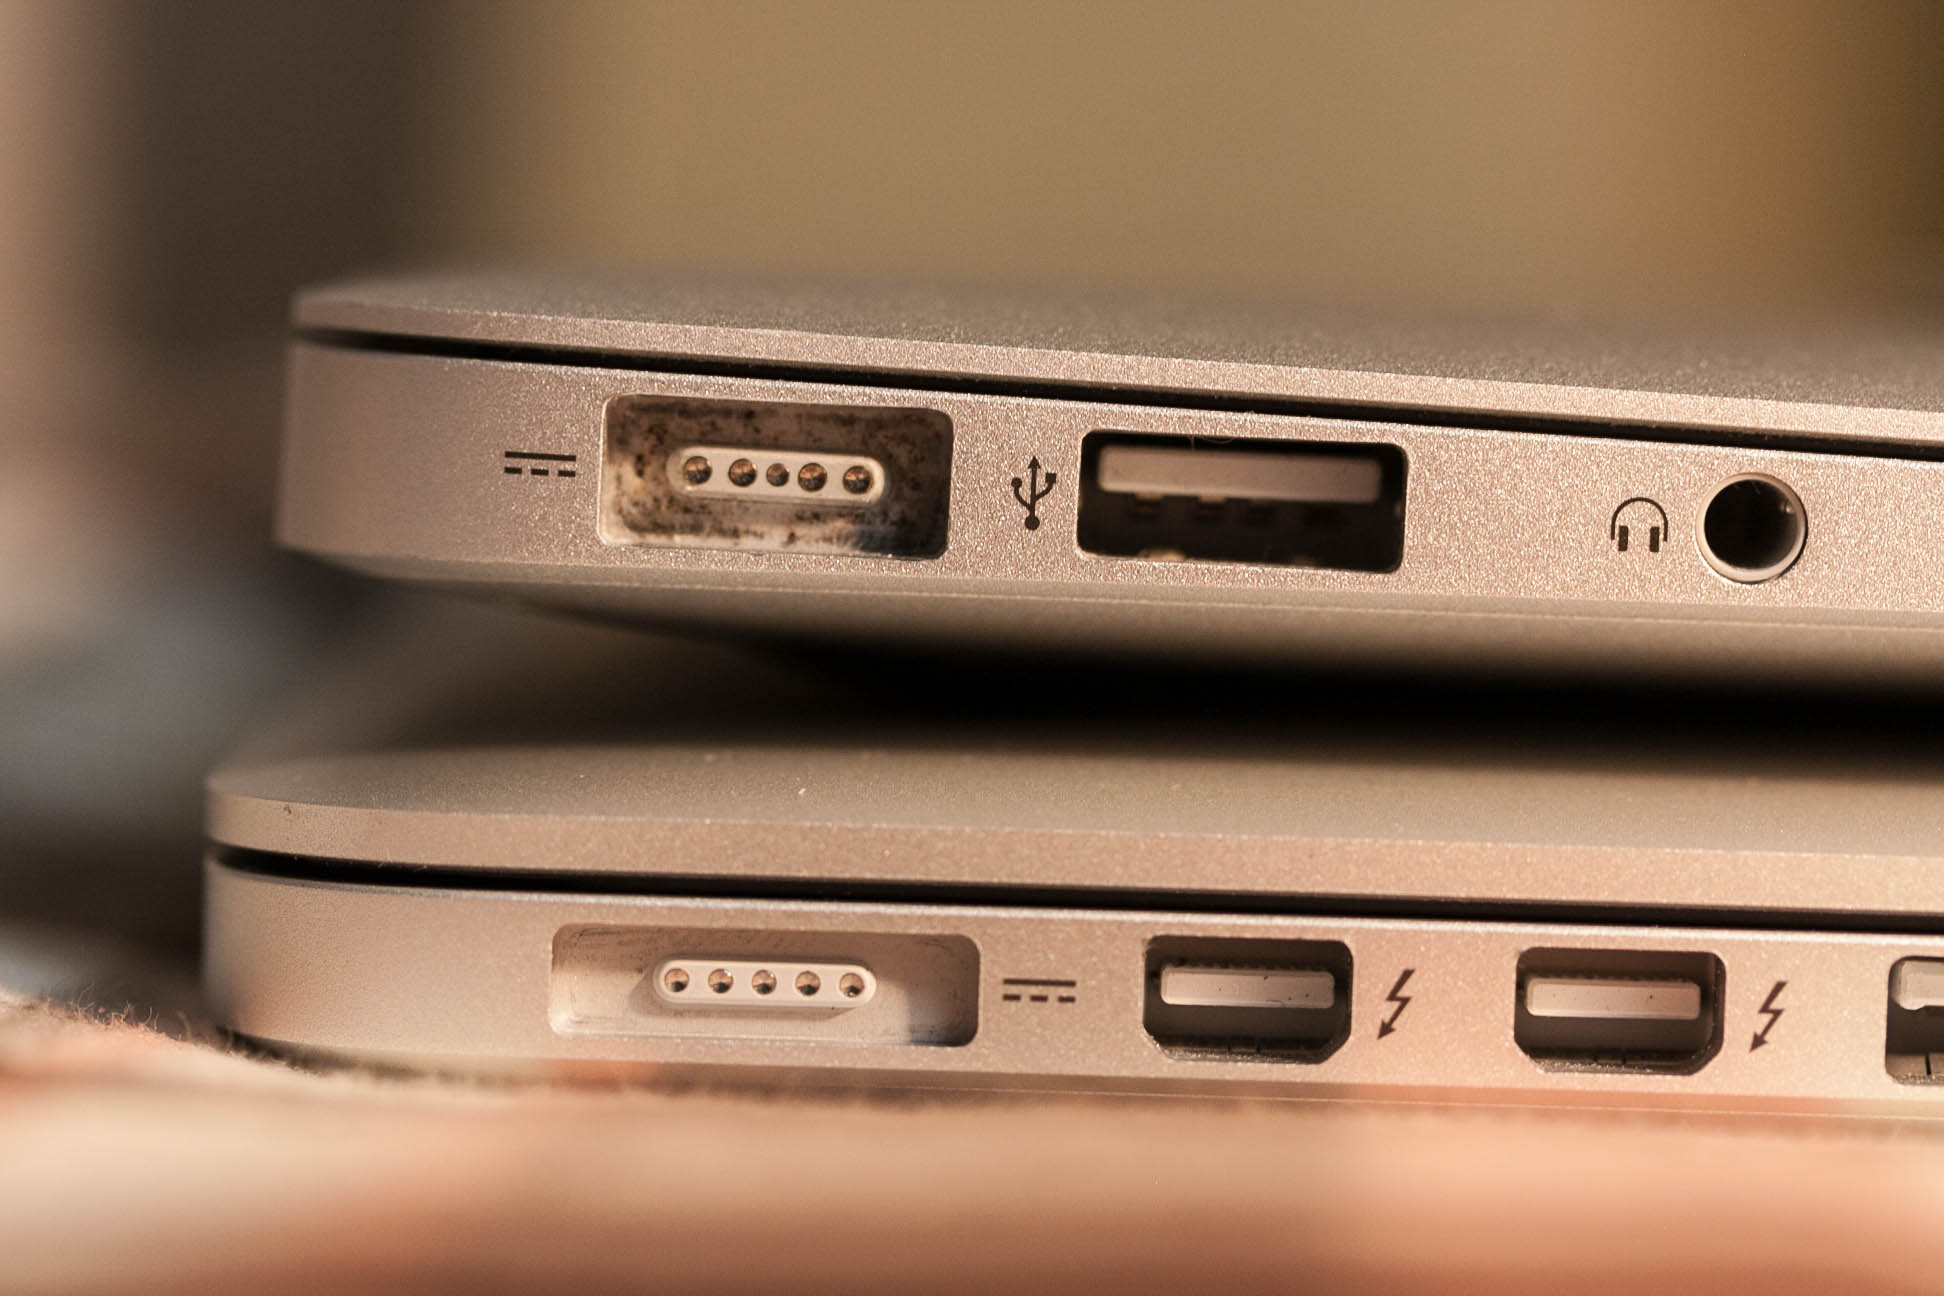 Apple Rumored to Remove Old-School USB Ports on Next Macbook Pro